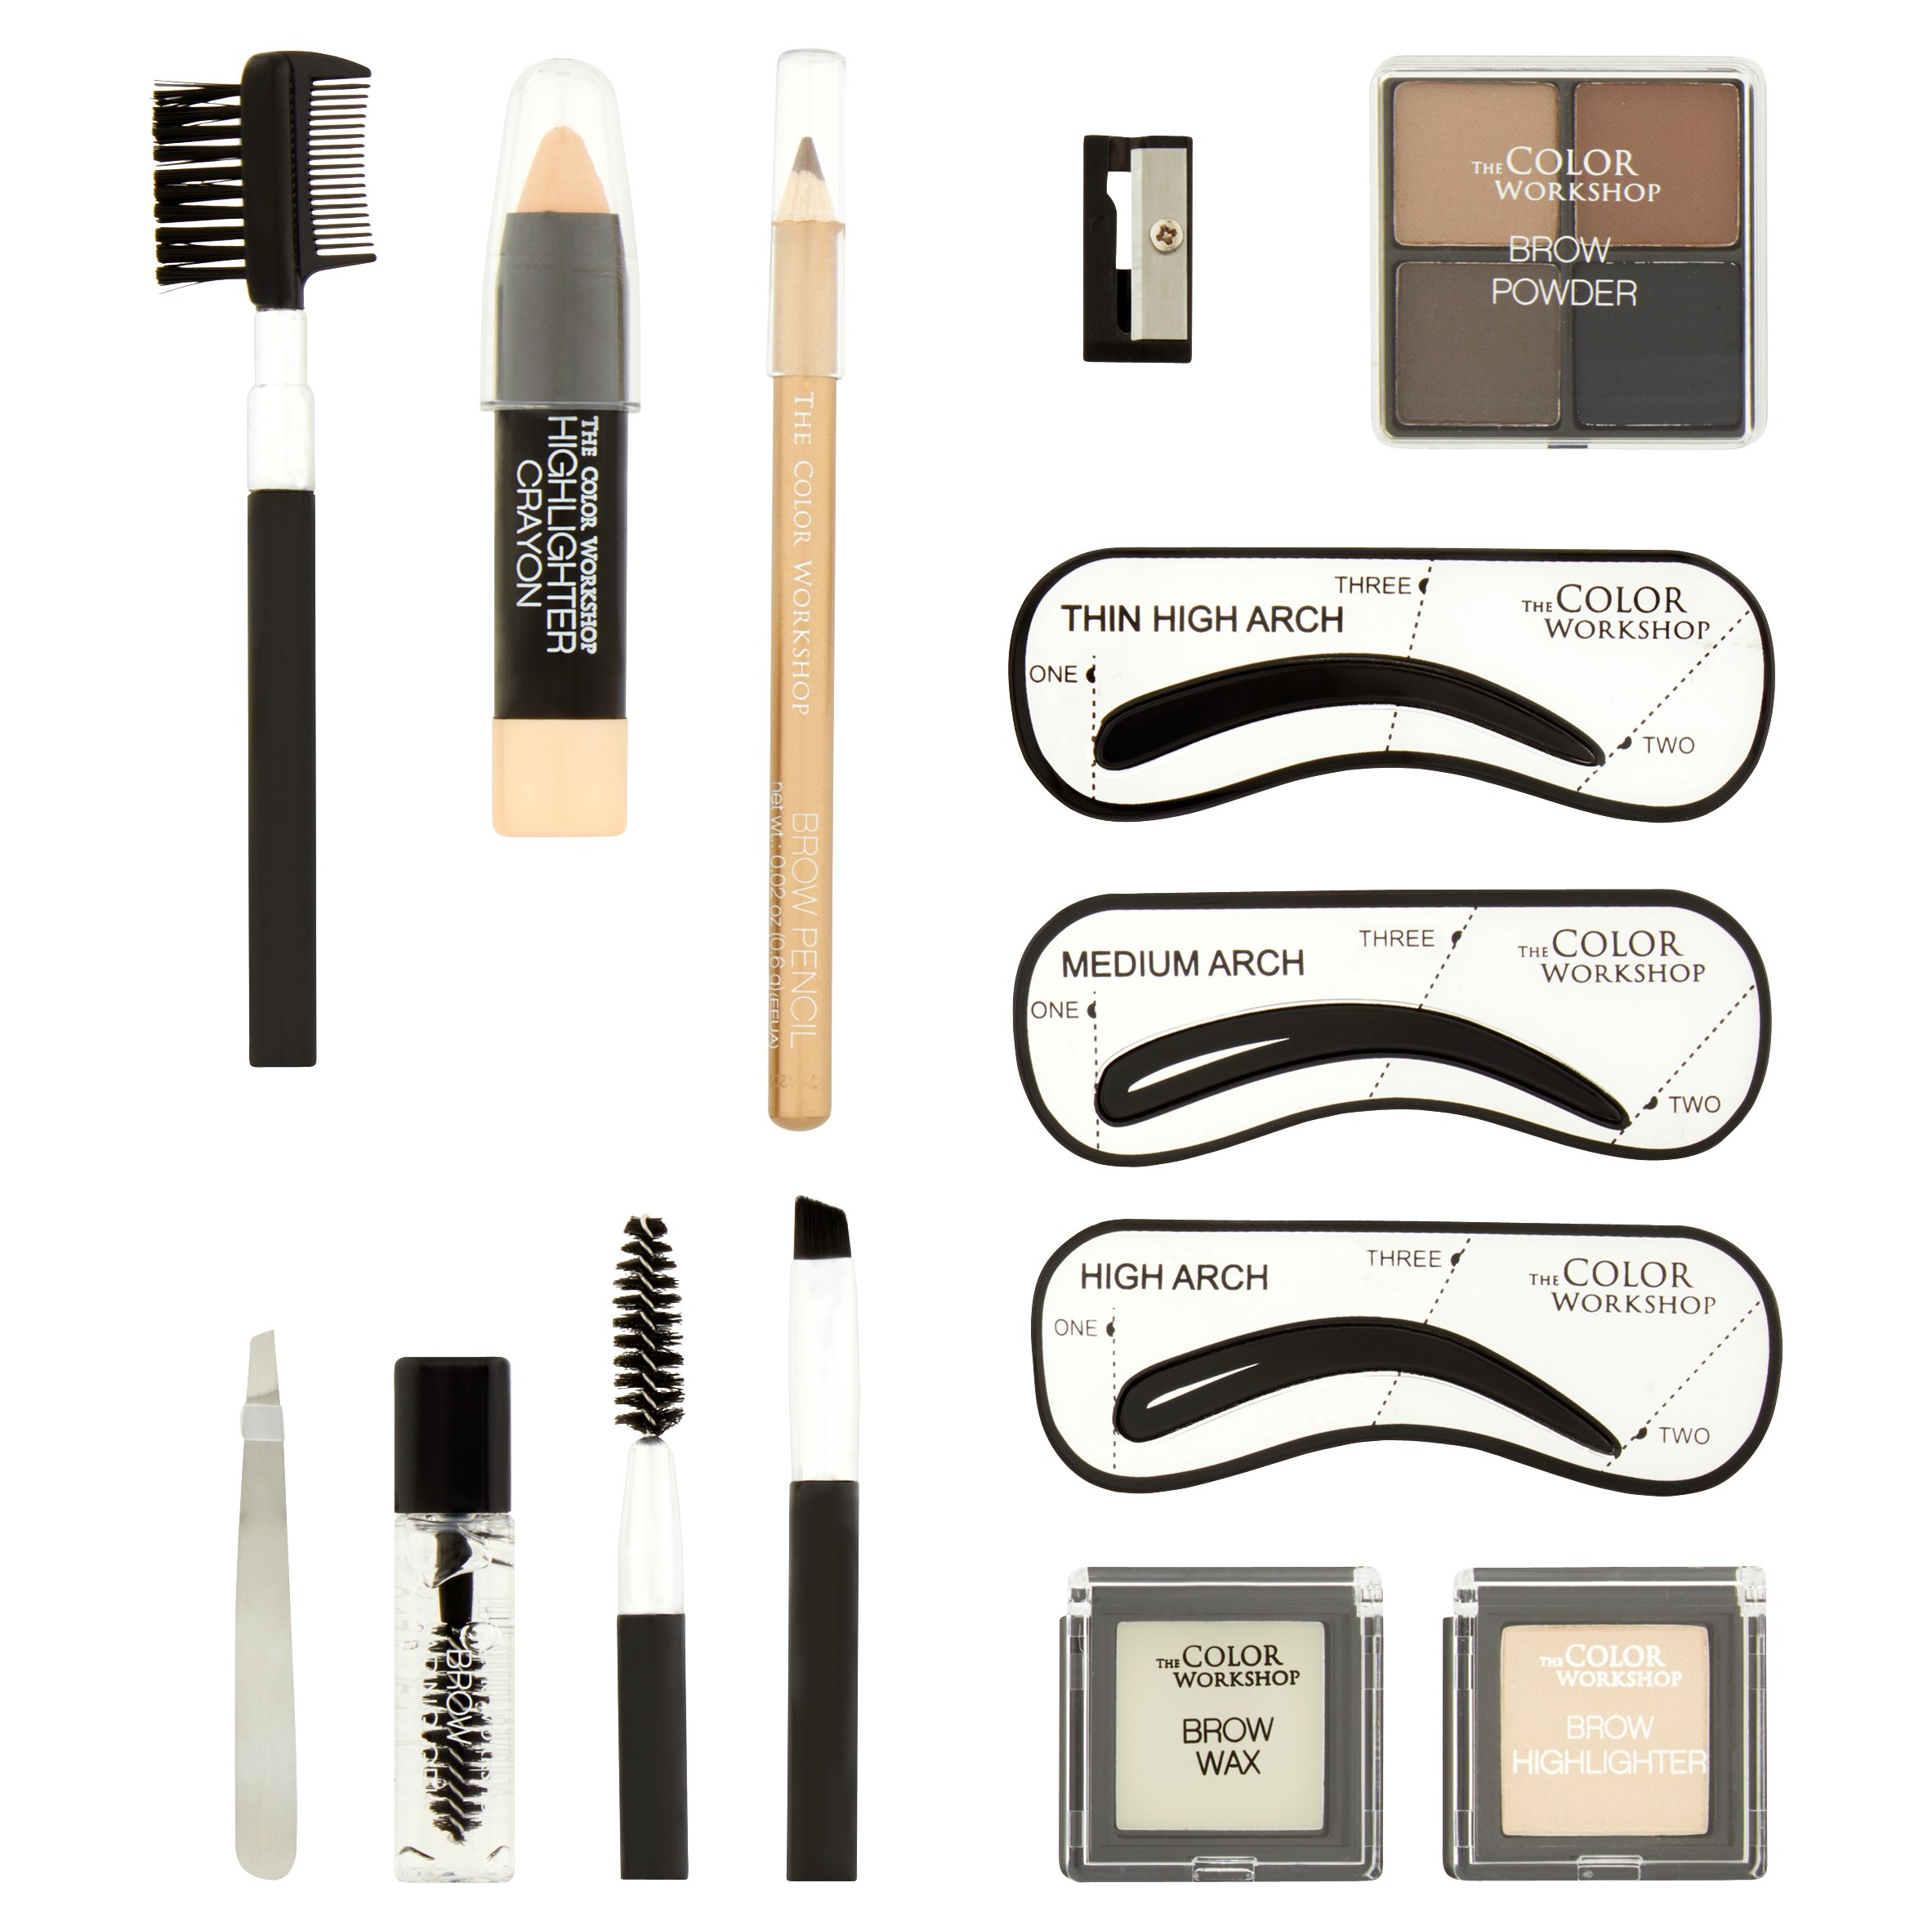 The Color Workshop Wow Wow Brows Brow Set, 17 piece